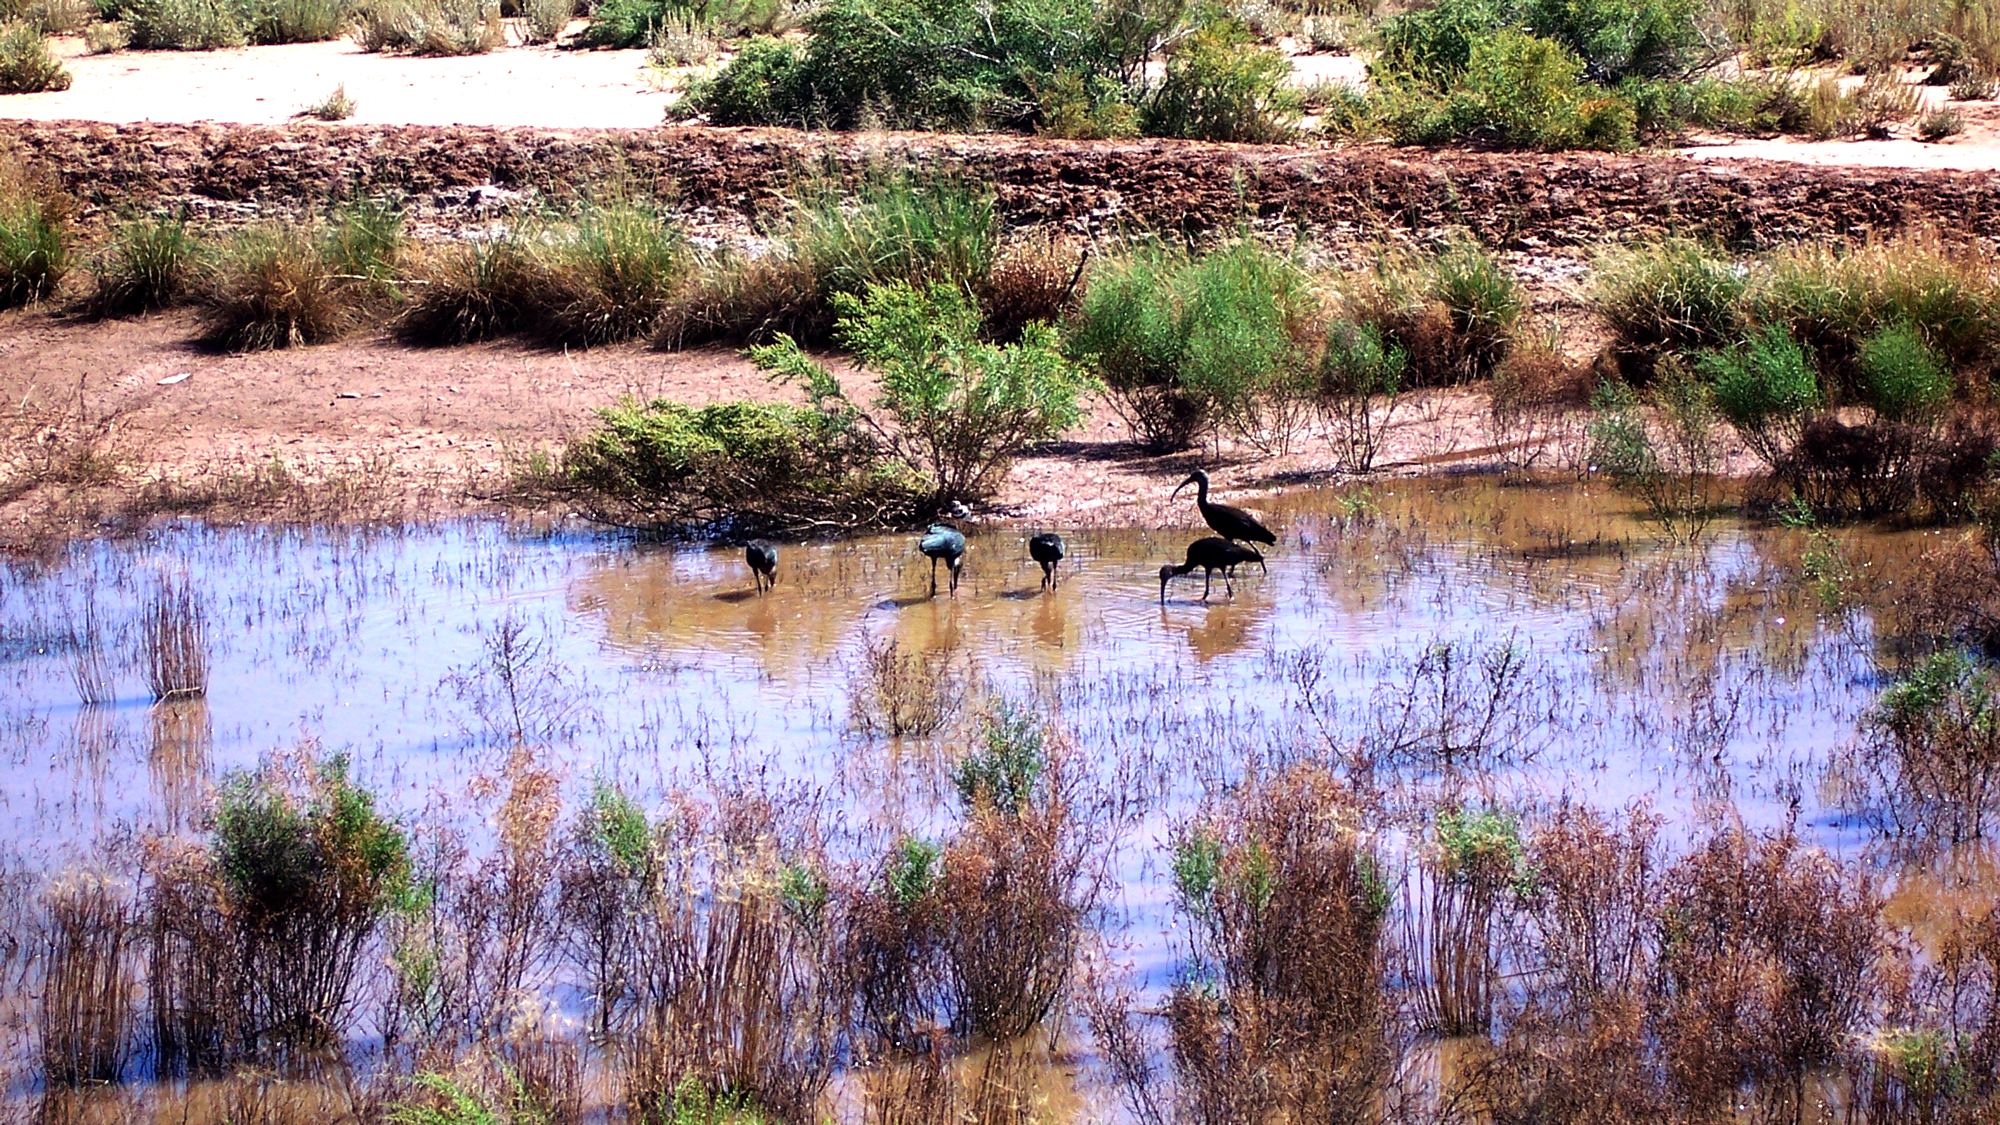 5 blue herons in the water of Chaco Wash